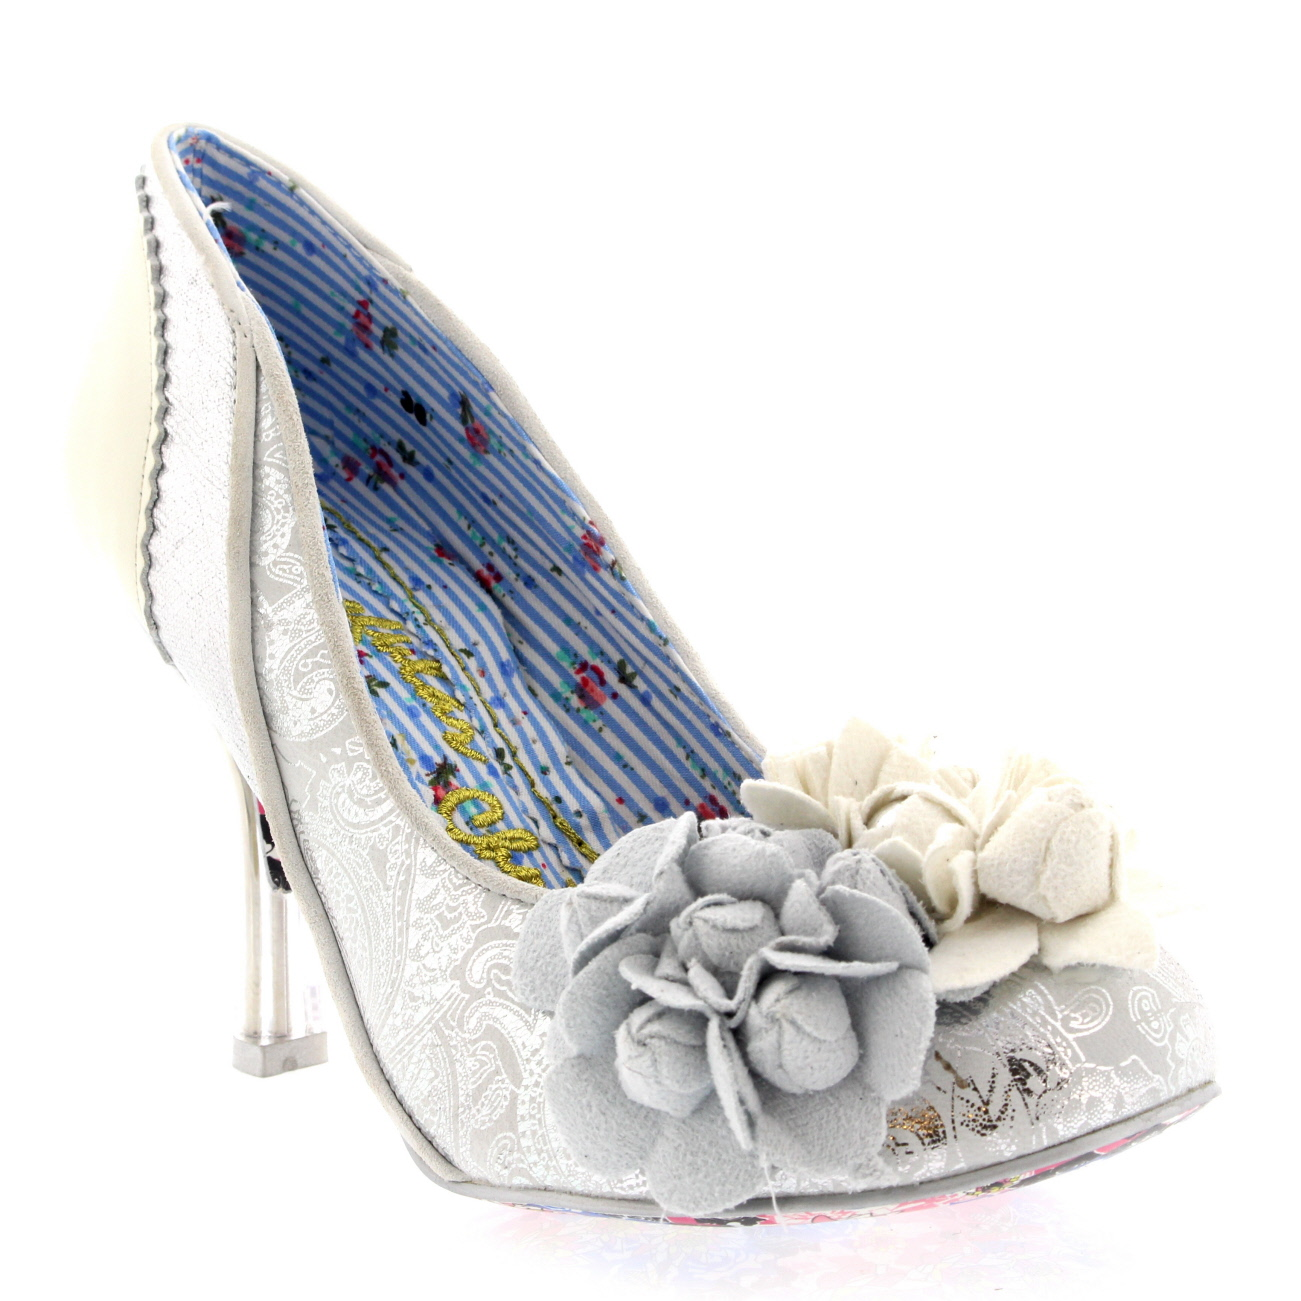 Womens Irregular Choice Mrs Lower Lace Floral Court Shoes High Heels UK 3.5-8.5